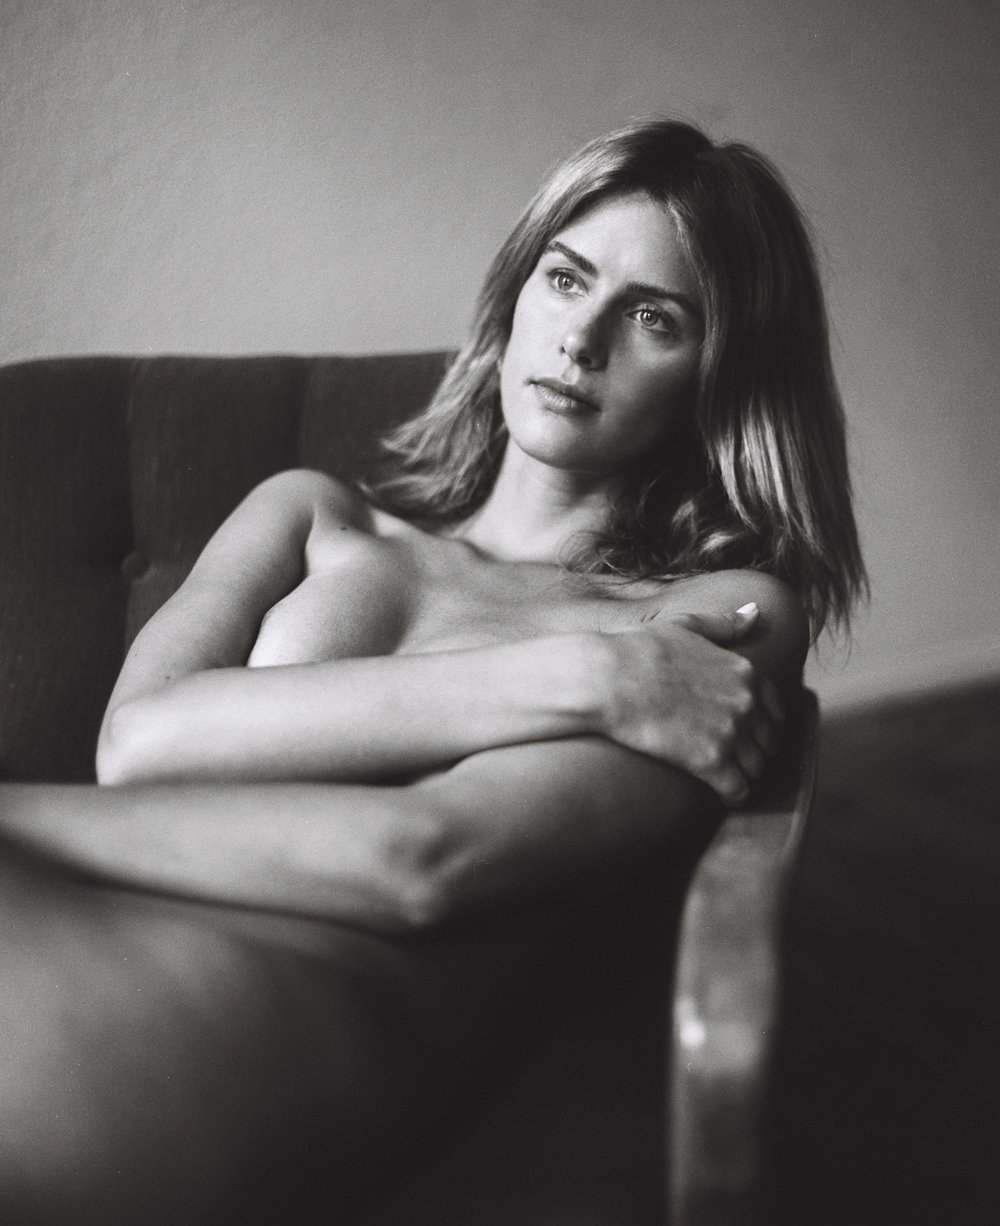 berlin boudoir photography nudes